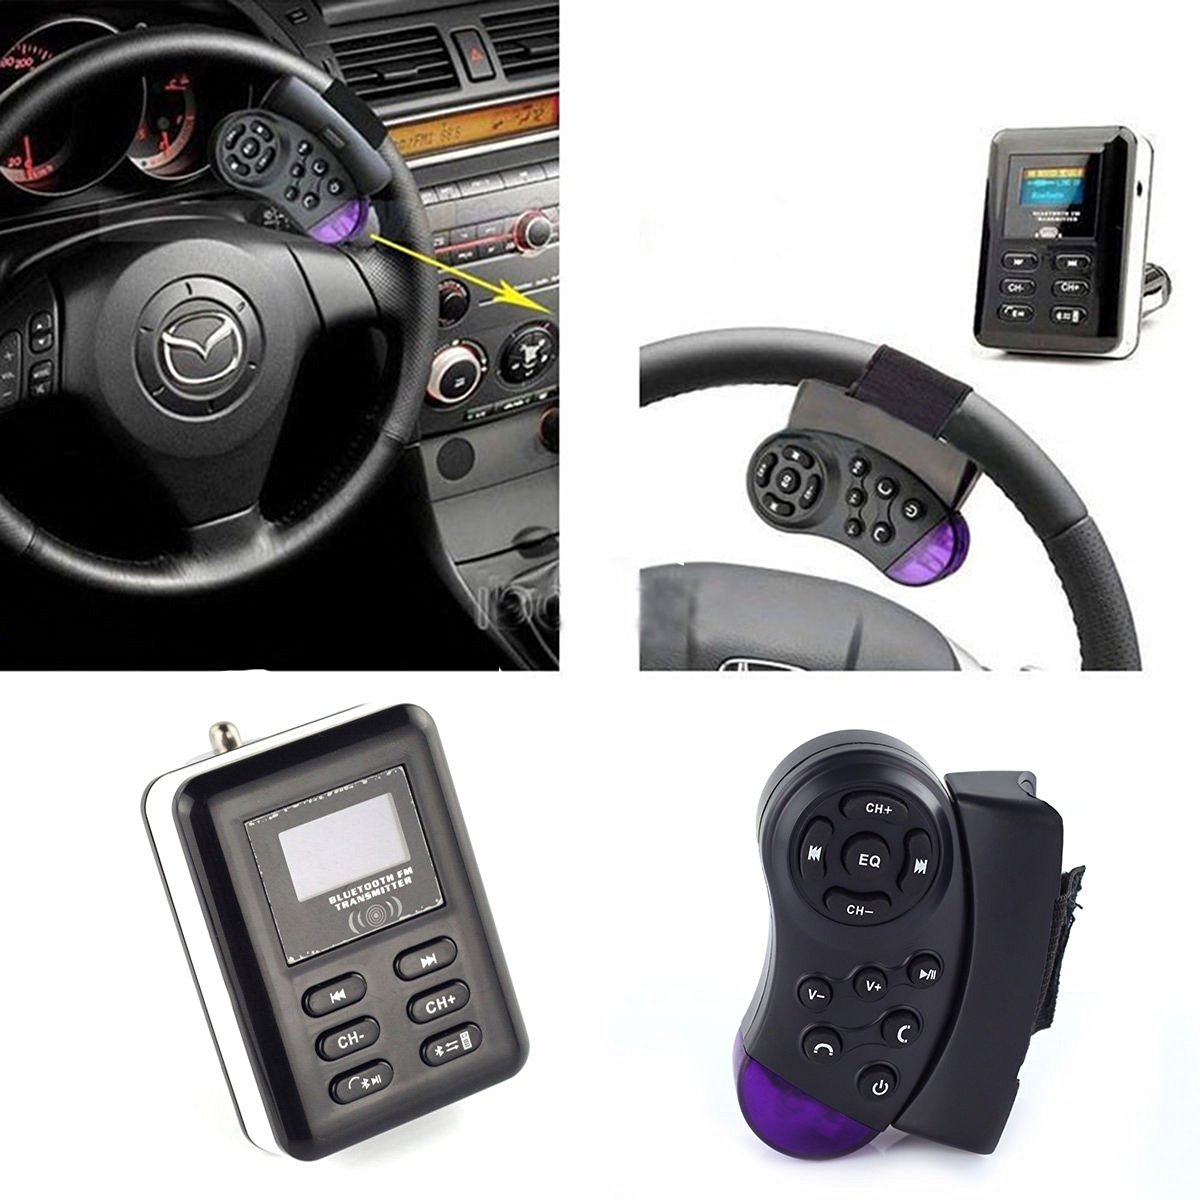 Modern New Arrival Car Kit MP3 Player Wireless Car FM Transmitter Modulator with Bluetooth Function USB SD LCD Steering Wheel Handsfree With Remote Control